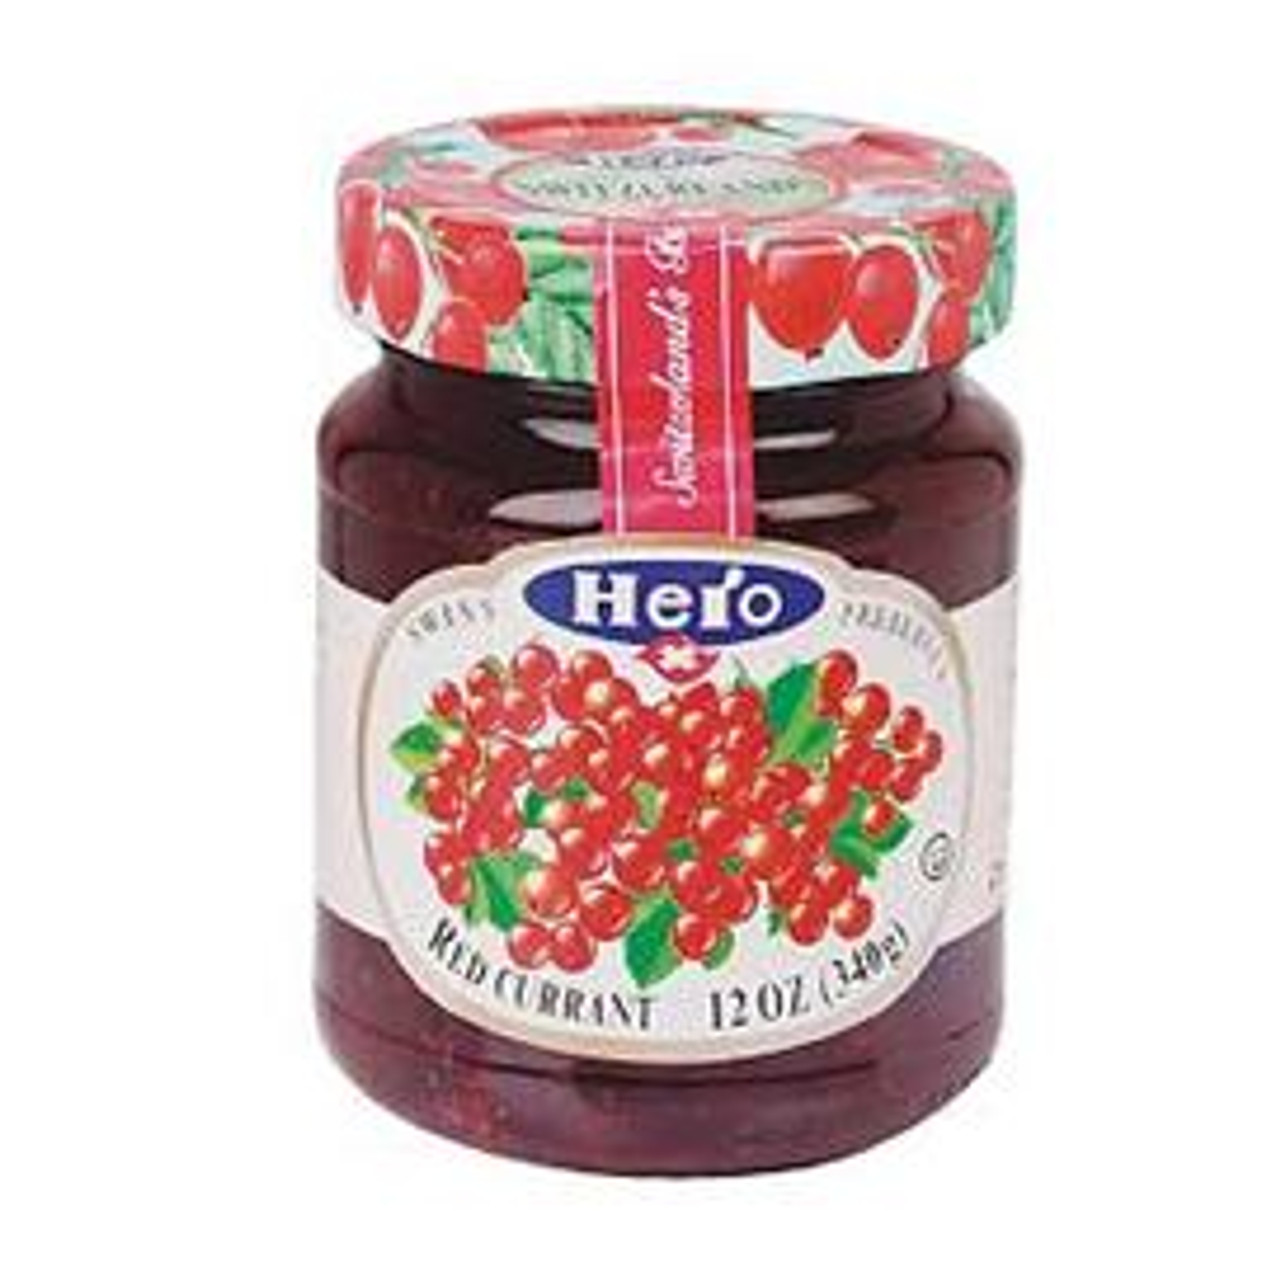 Red Currant  Fruit Spread